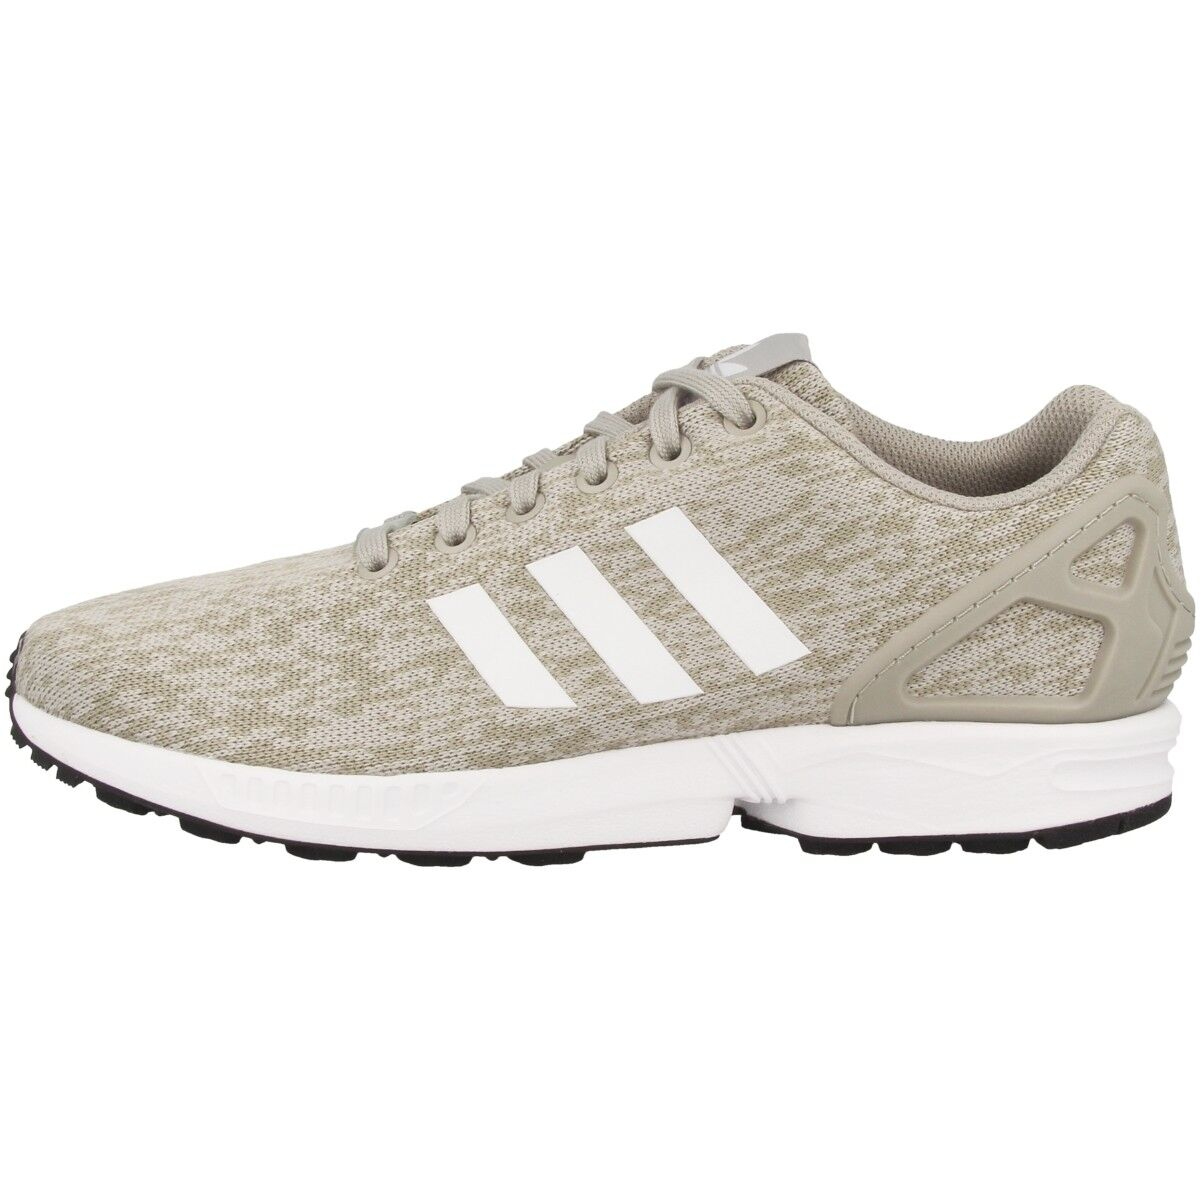 Adidas ZX Flux ZX750 Schuhe Originals Sneaker BY9424 sesame Weiß ZX750 Flux 850 Torsion 4e39f9